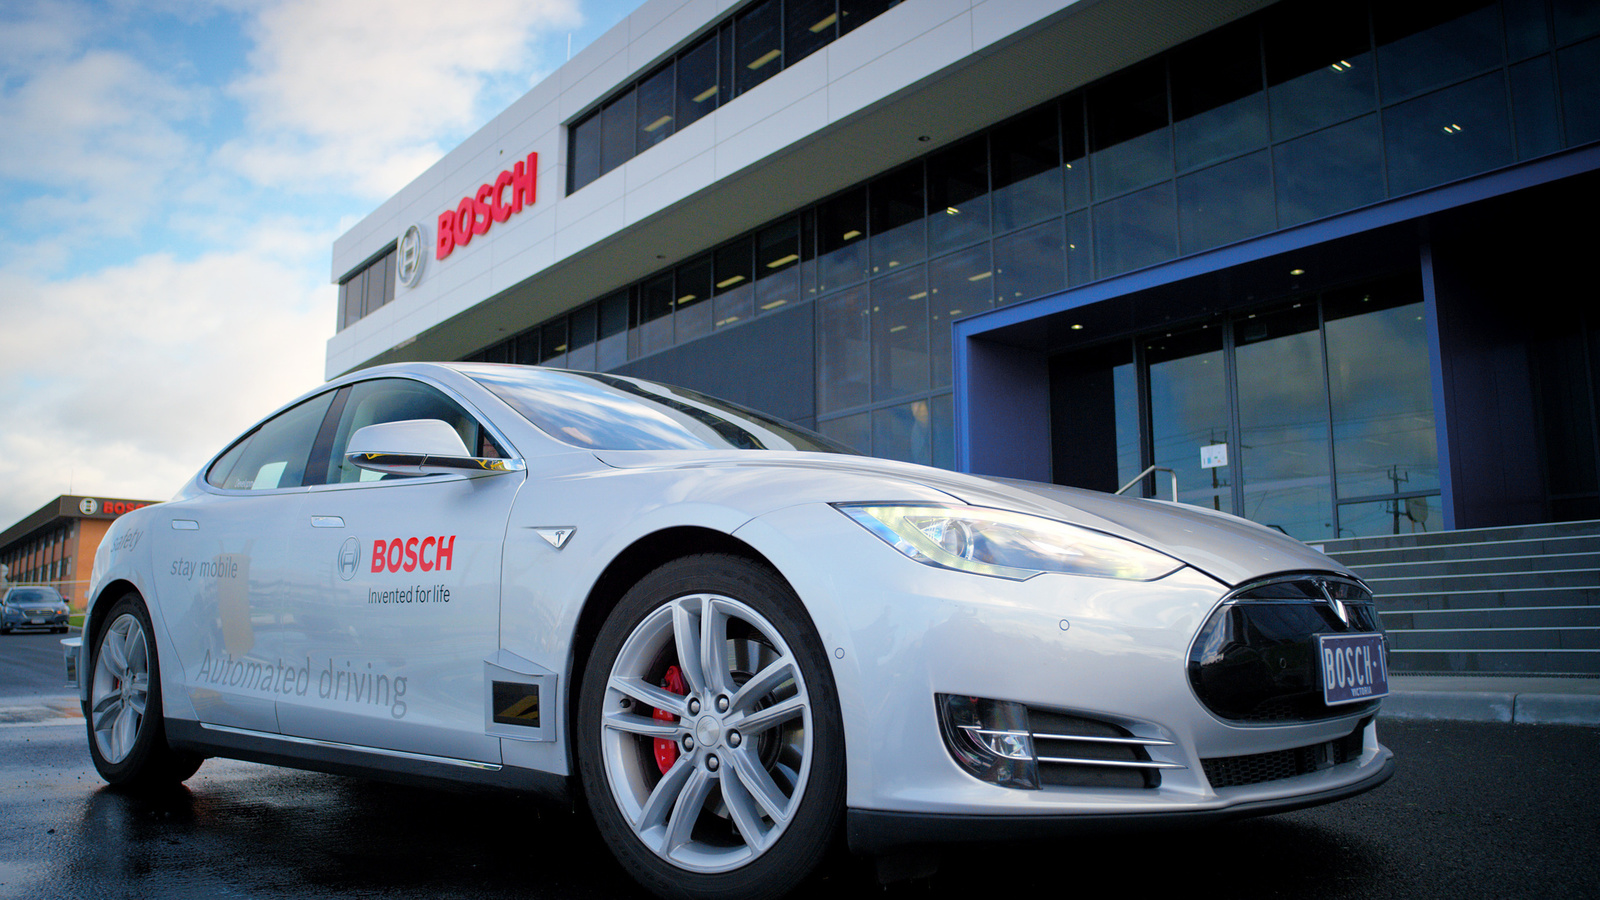 New Bosch development vehicle for highly automated driving